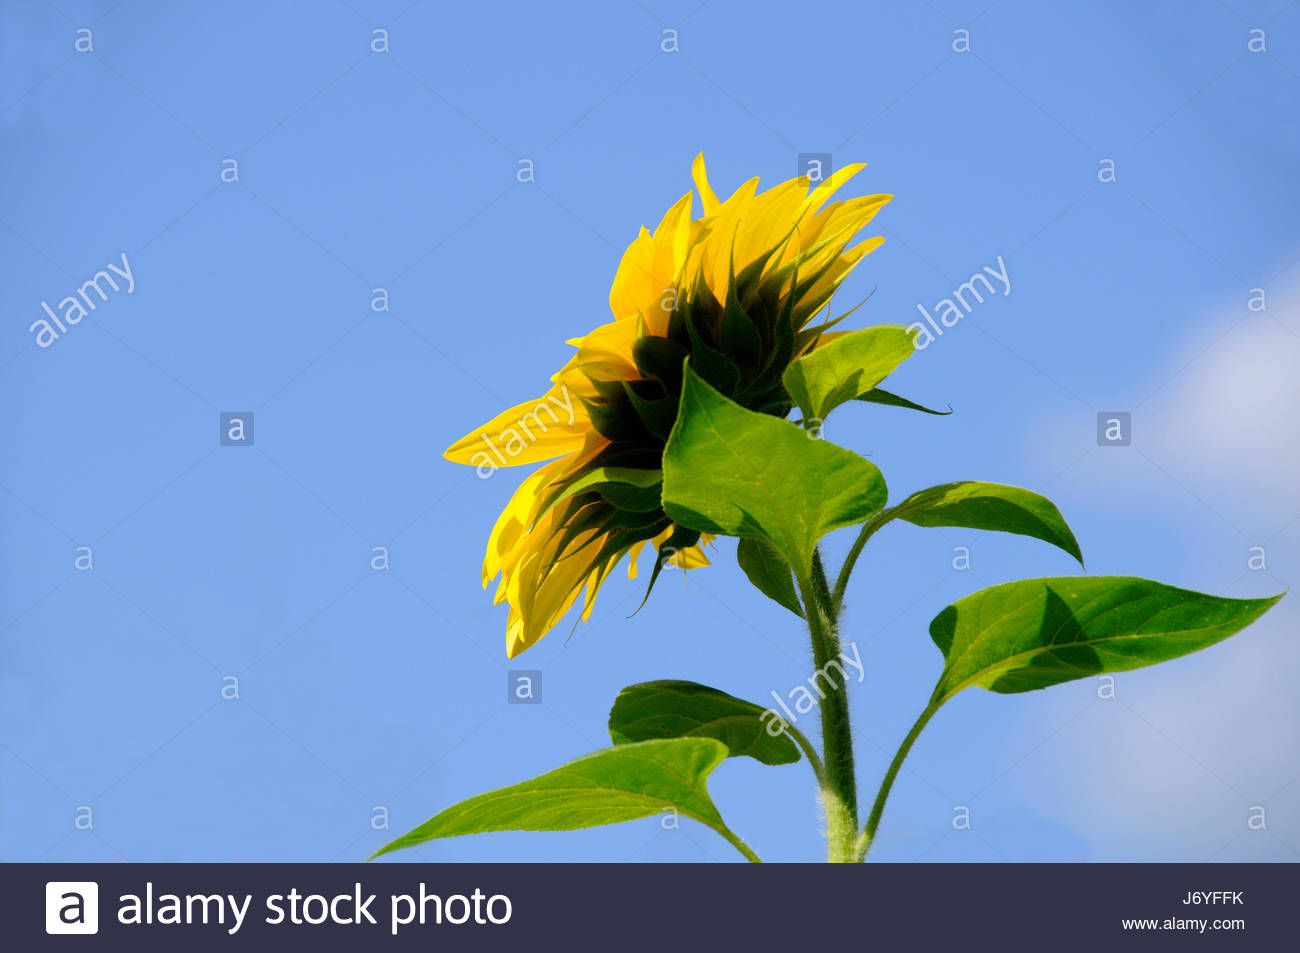 sunbather - Stock Image